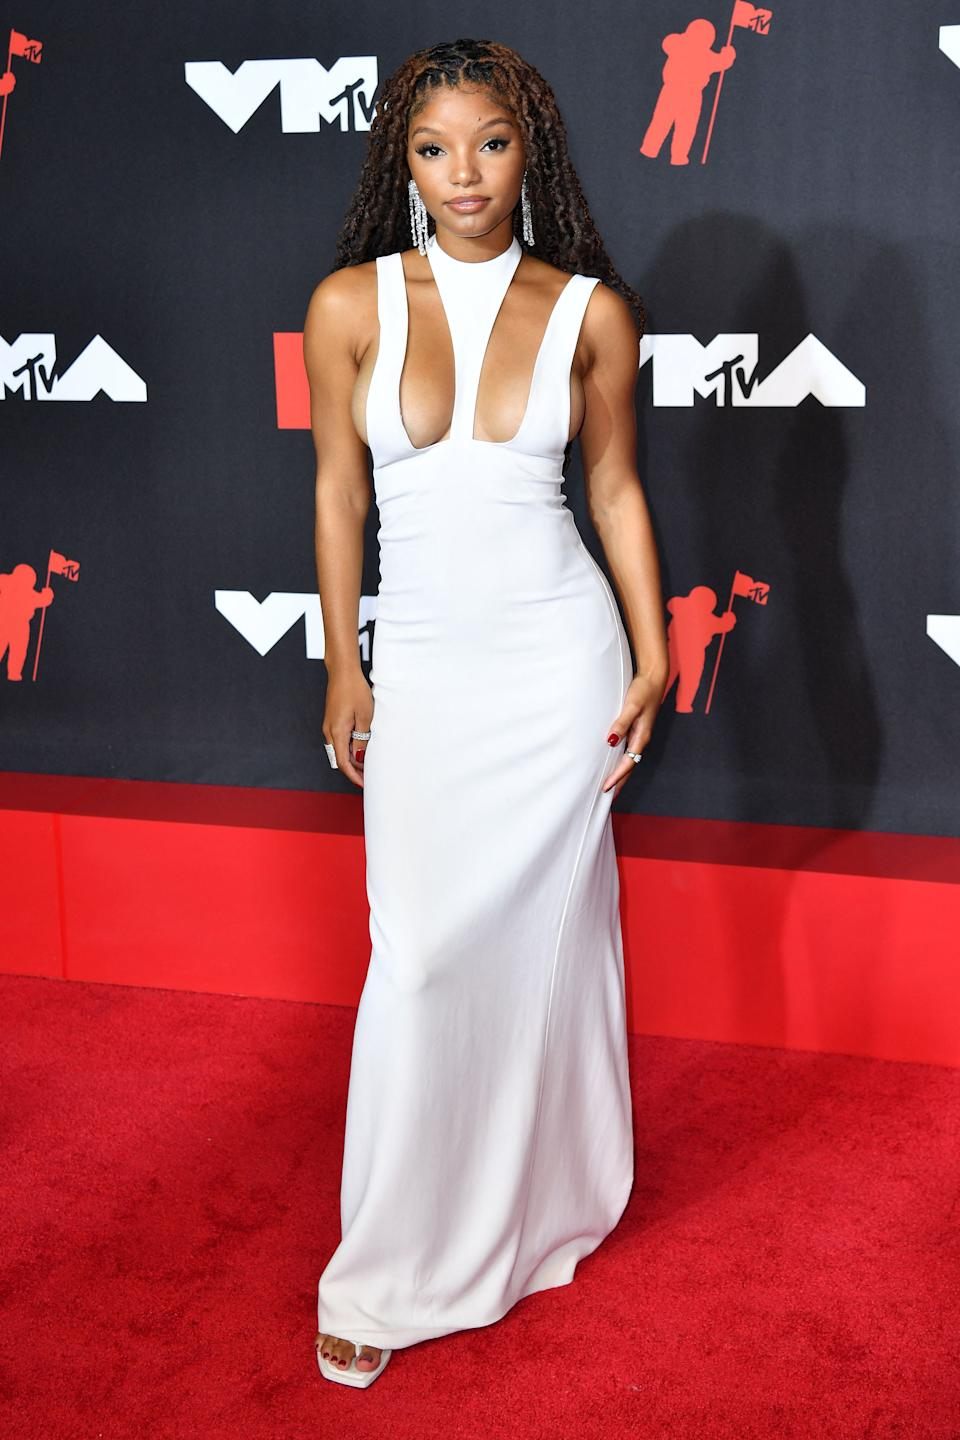 R&B duo member Halle Bailey arrives for the 2021 MTV Video Music Awards